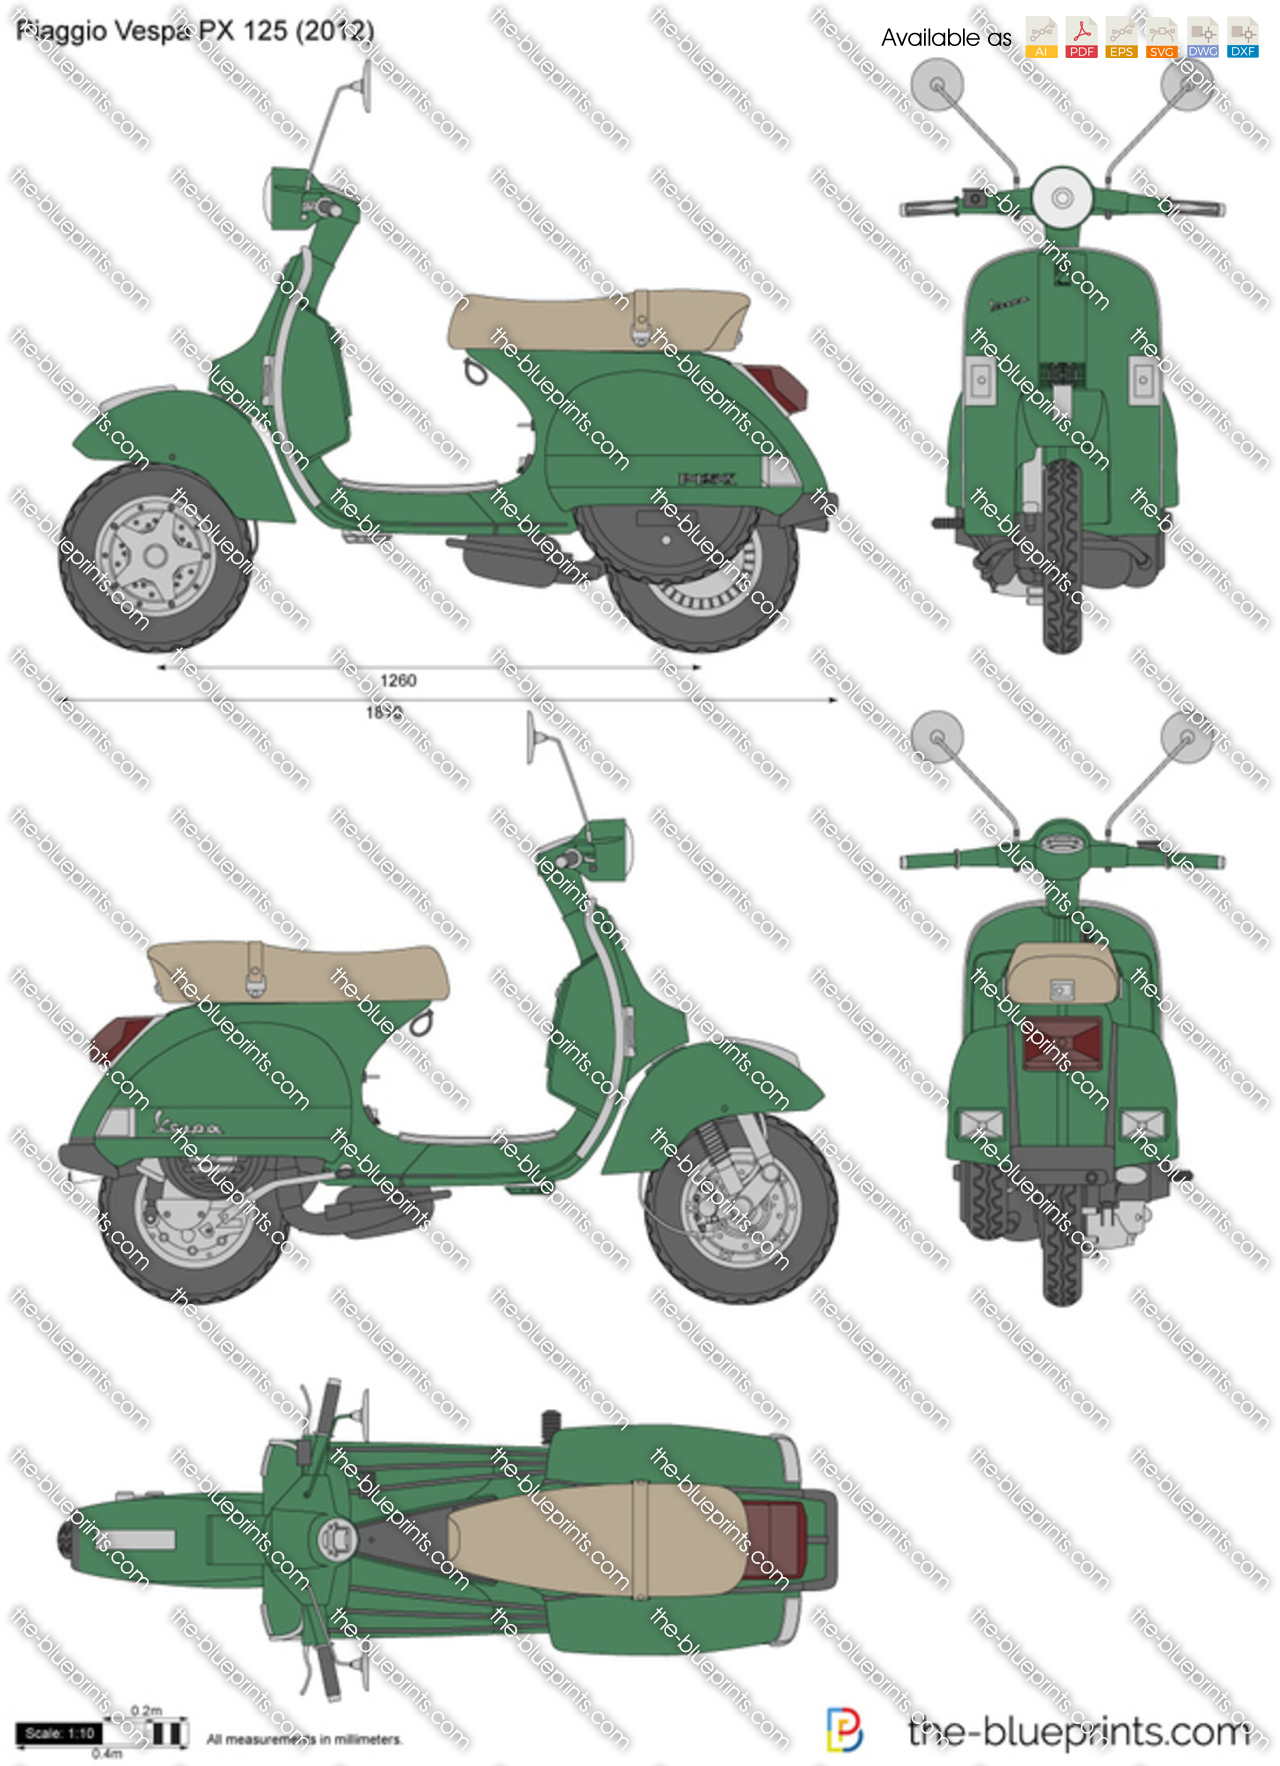 piaggio vespa px 125 vector drawing. Black Bedroom Furniture Sets. Home Design Ideas